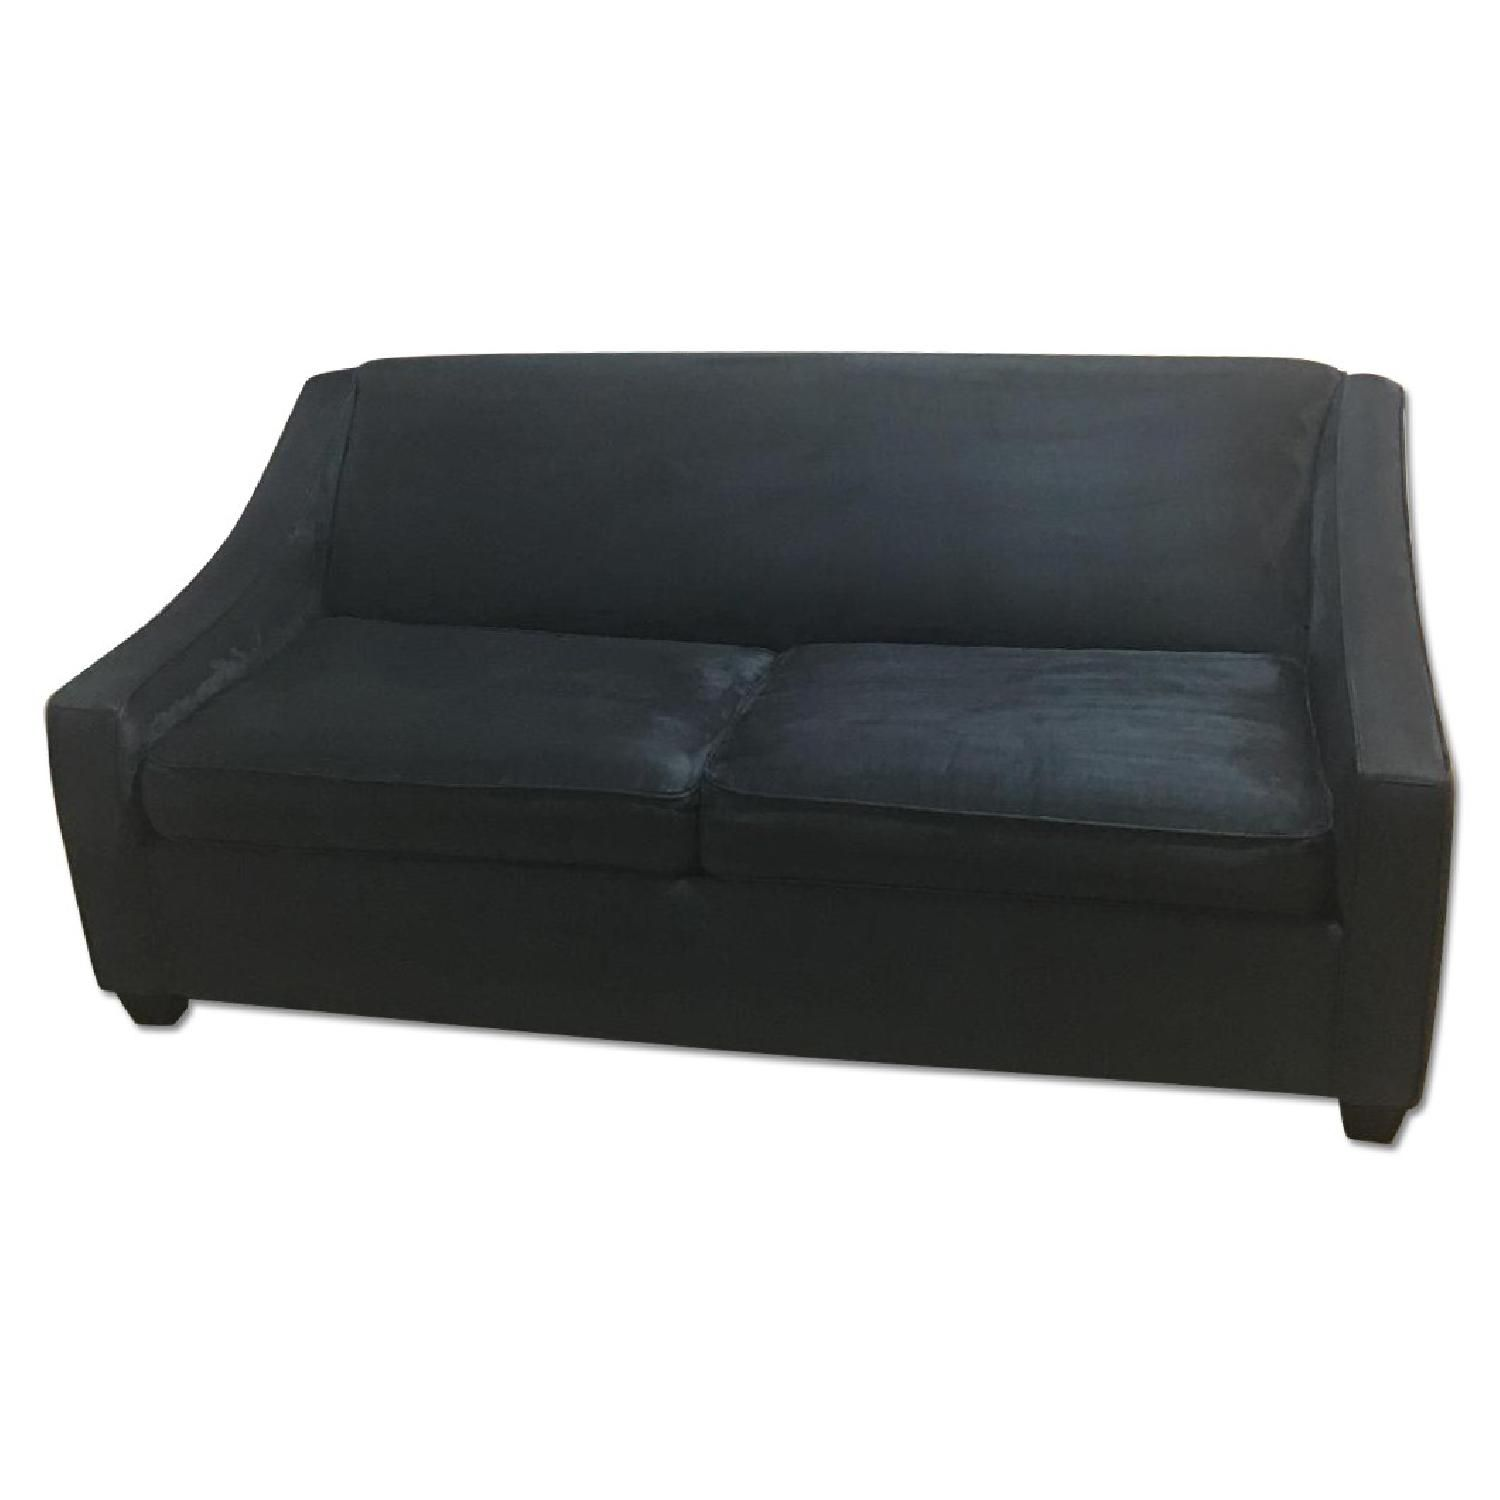 Incredible Havertys Navy Full Sleeper Couches Sofa Second Hand Alphanode Cool Chair Designs And Ideas Alphanodeonline